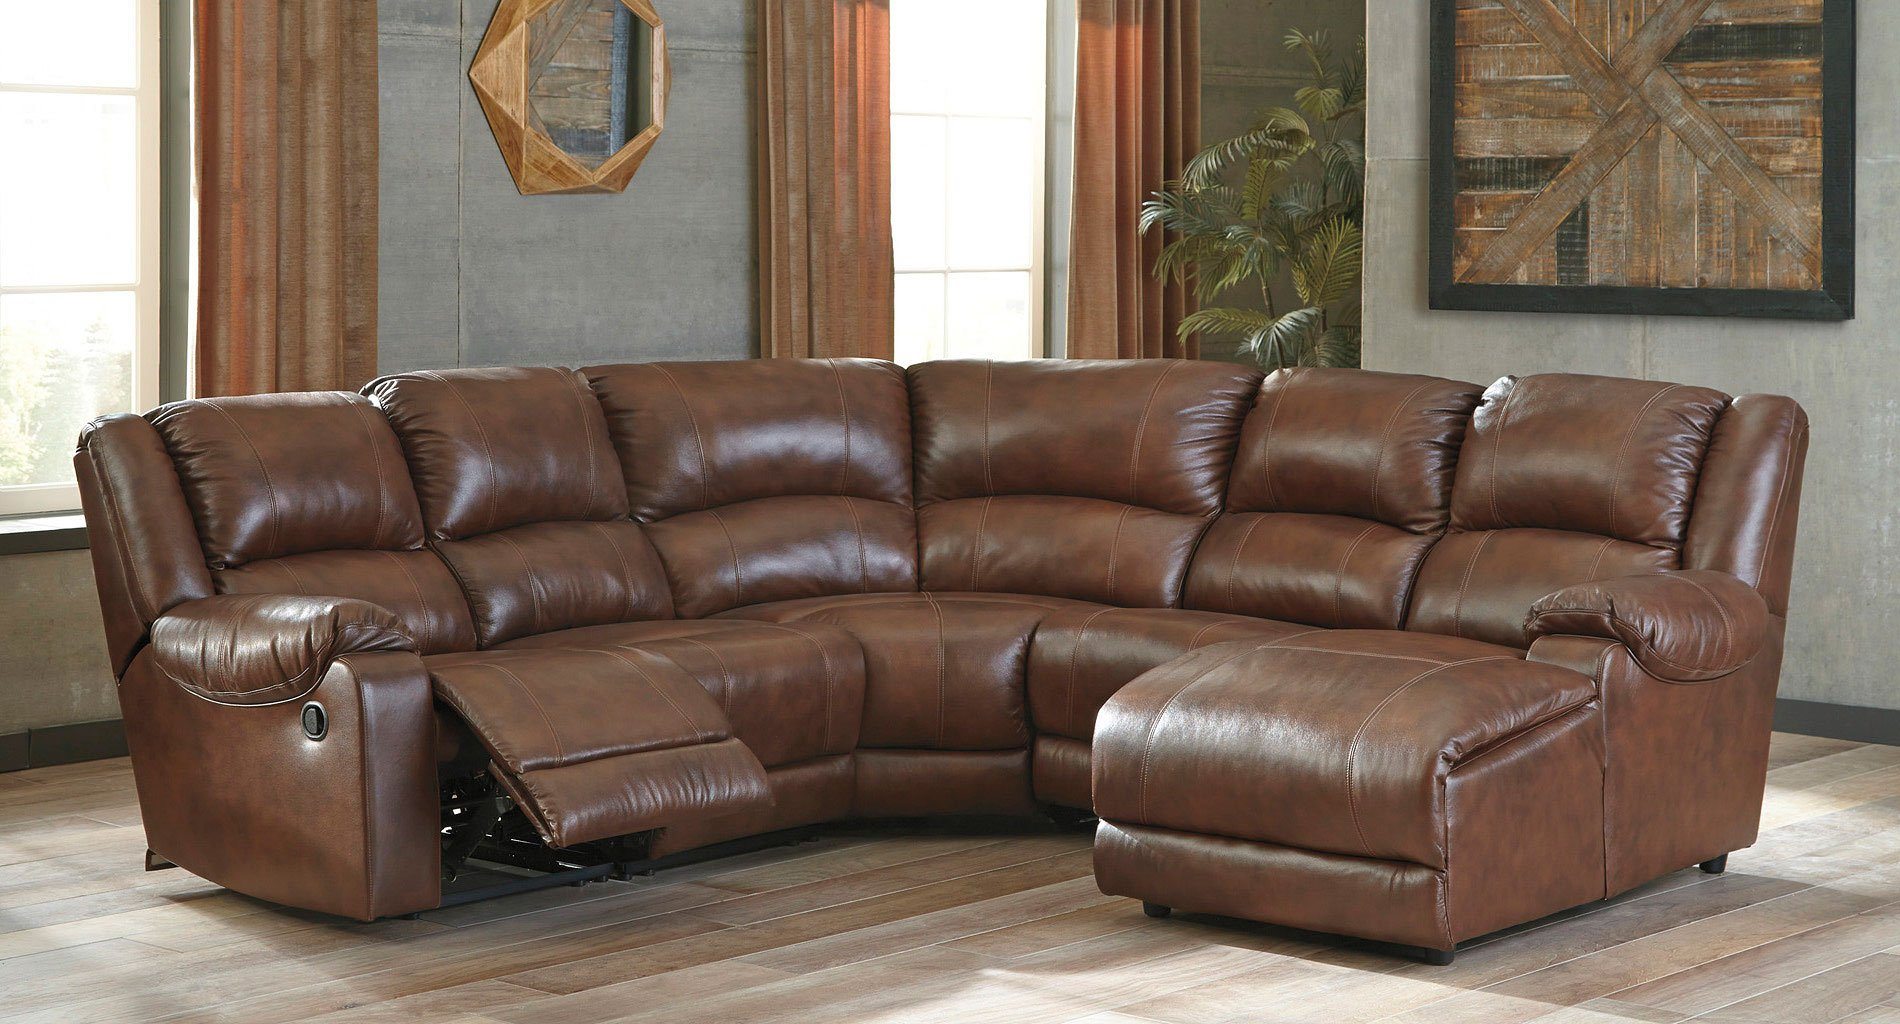 chaise sectional sectionals living room furniture living room